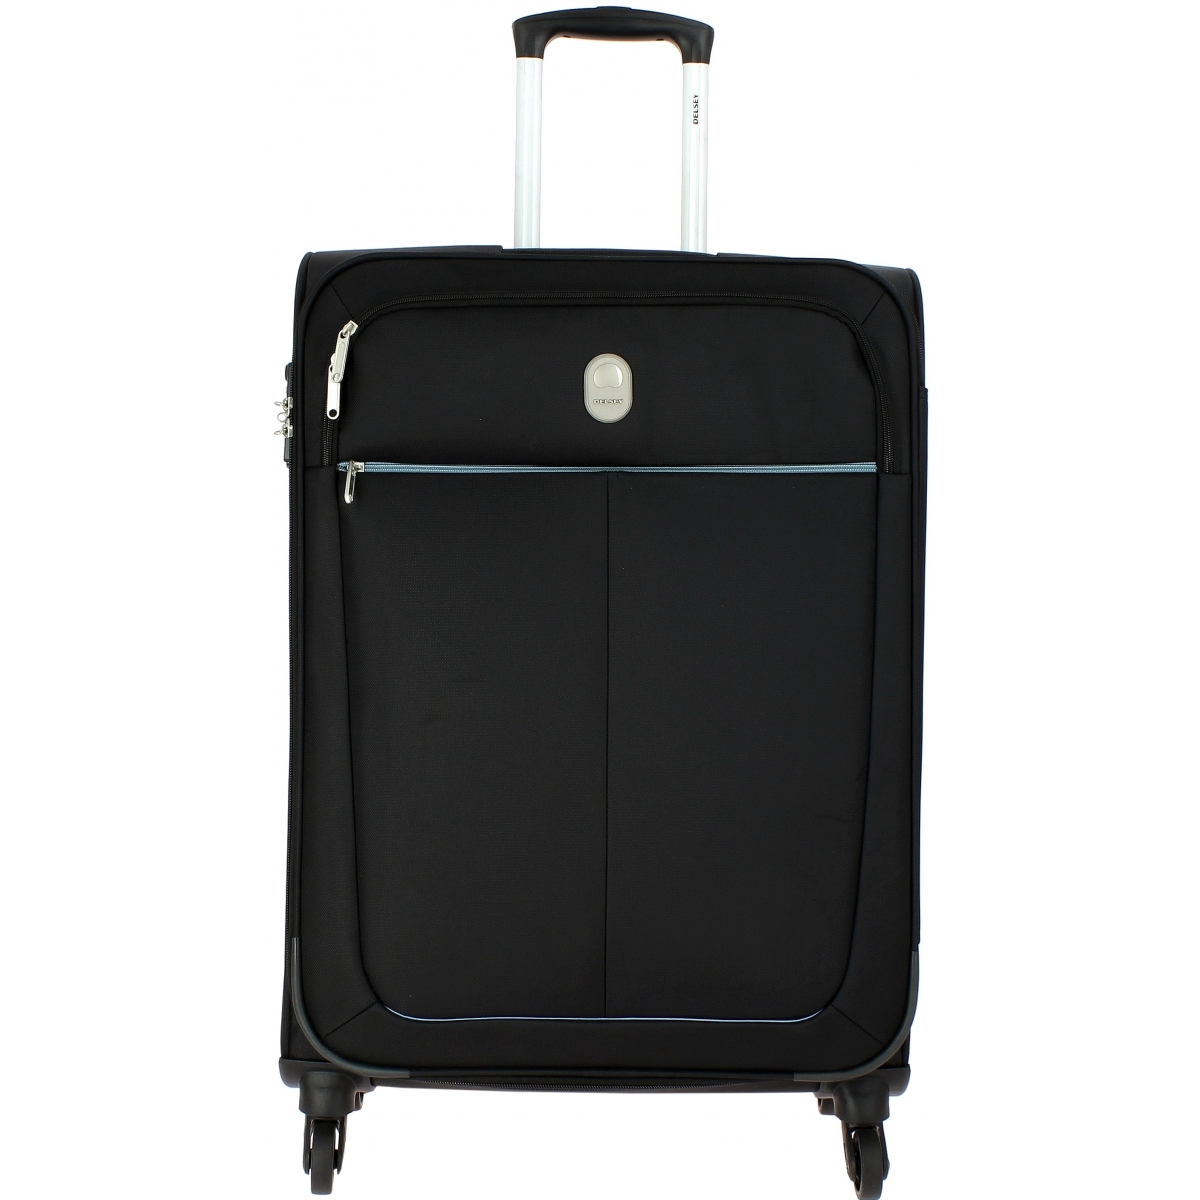 valise souple delsey caleo 68cm caleo811 couleur principale noir valise pas cher. Black Bedroom Furniture Sets. Home Design Ideas